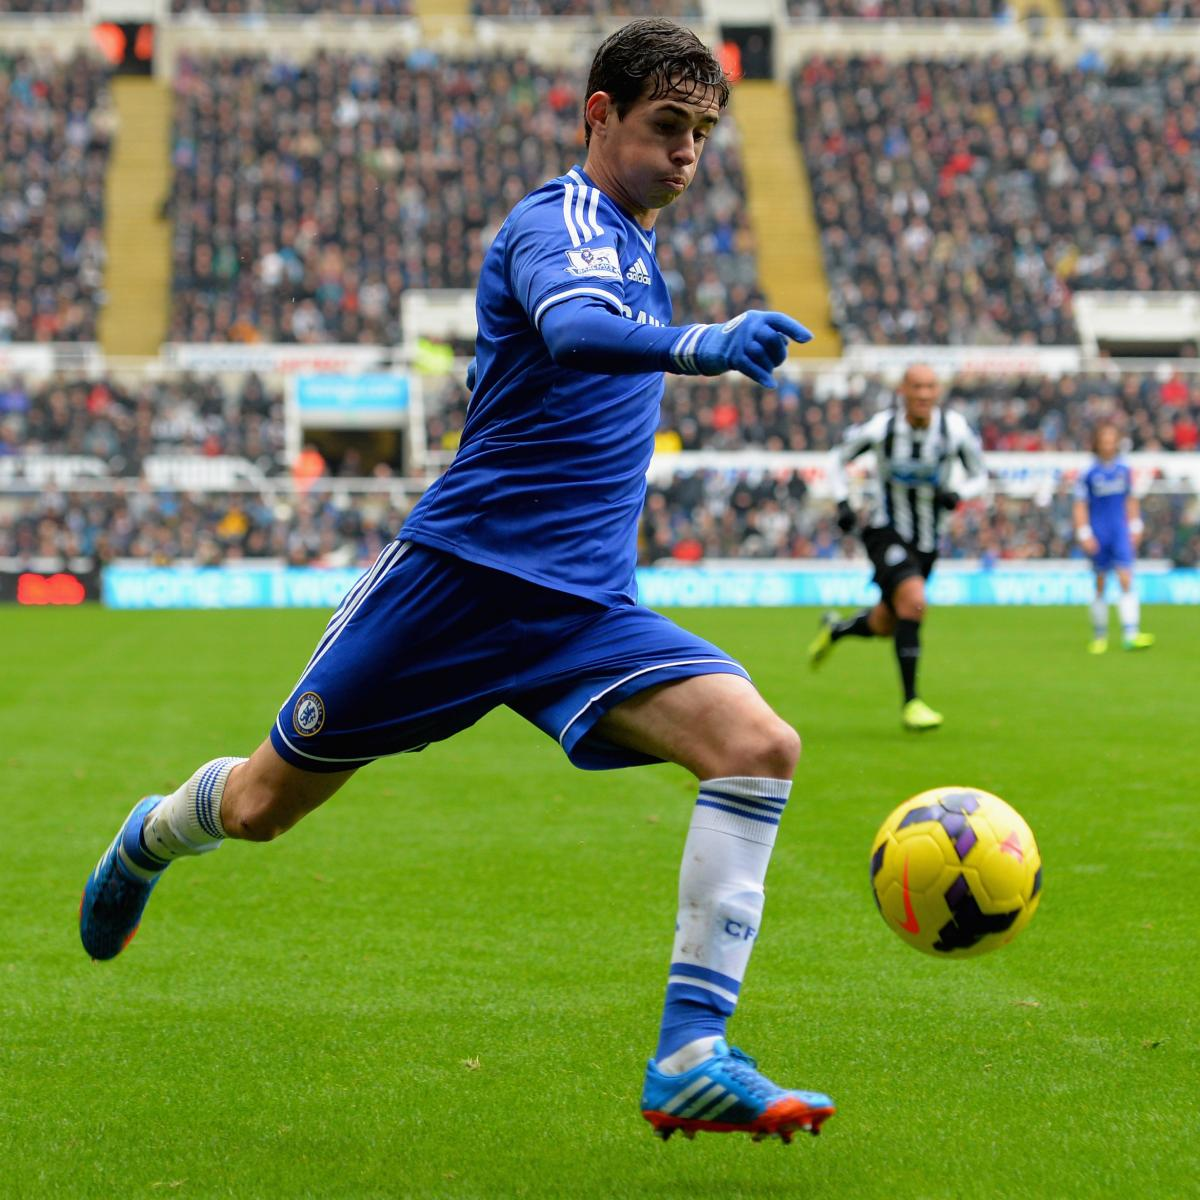 Oscar Chelsea: Oscar Joined Chelsea Despite The Temptation Of Real Madrid